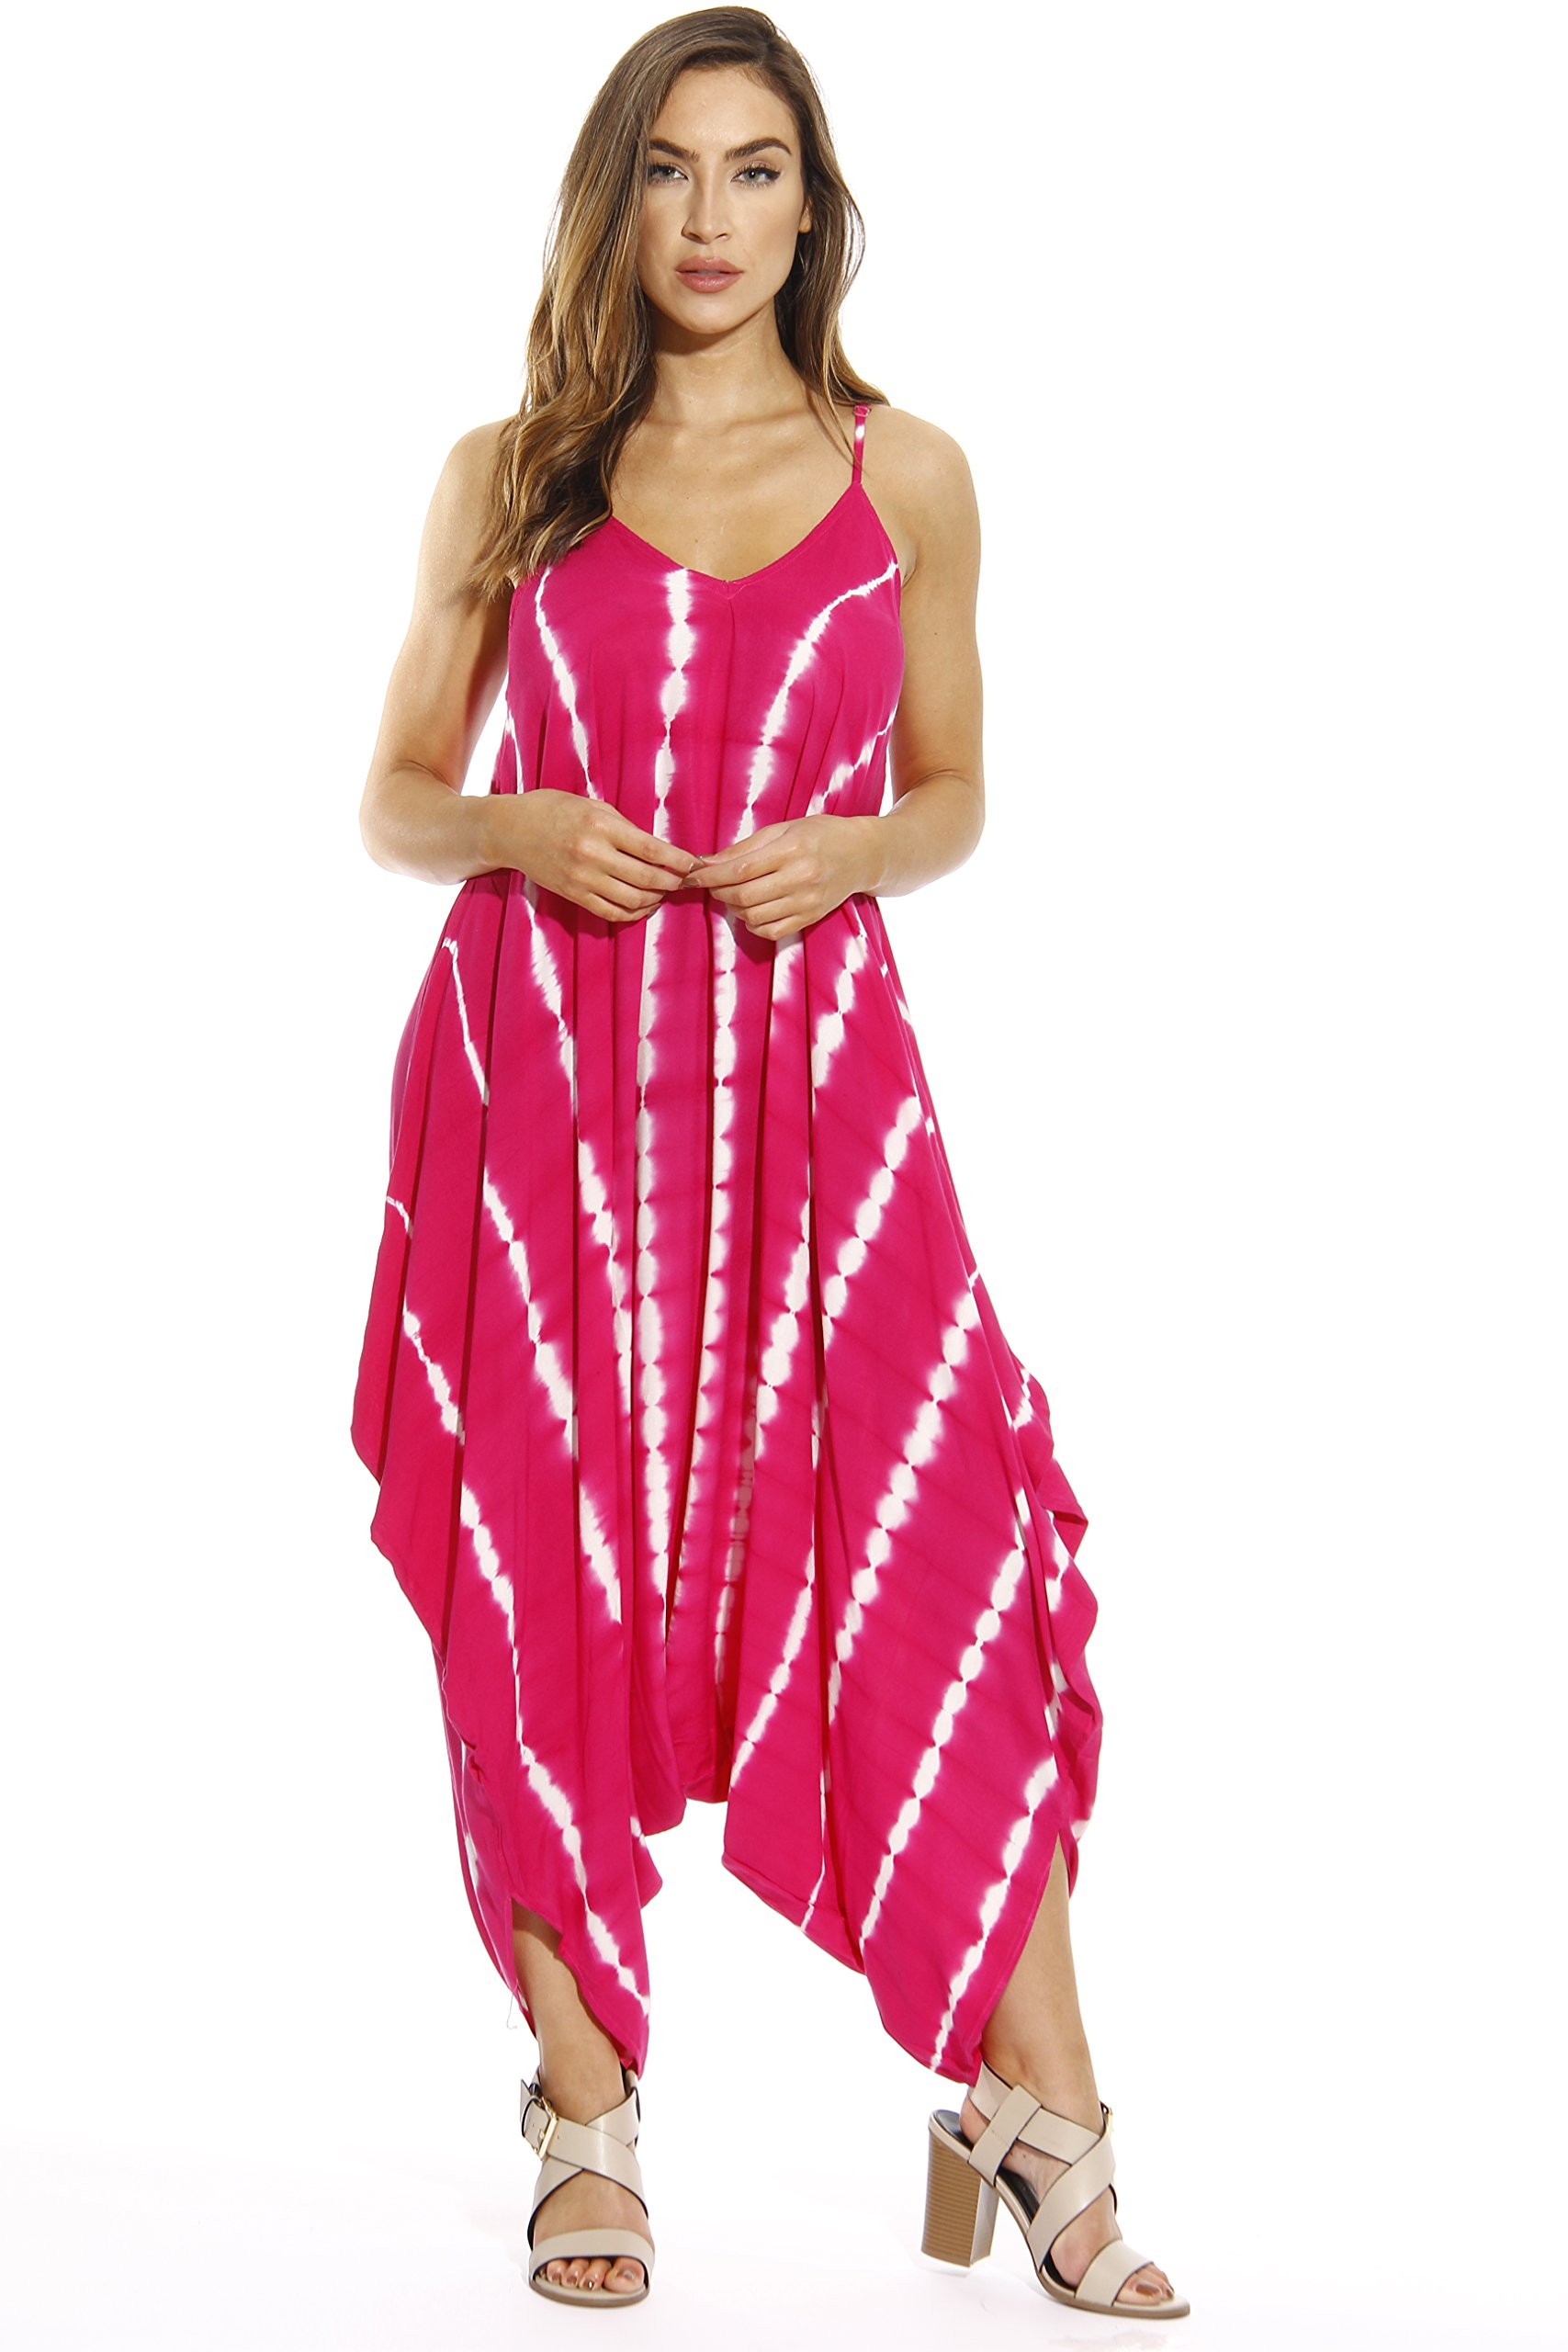 Riviera Sun 21635-FW-1X Jumpsuit/Jumpsuits for Women by Riviera Sun (Image #1)